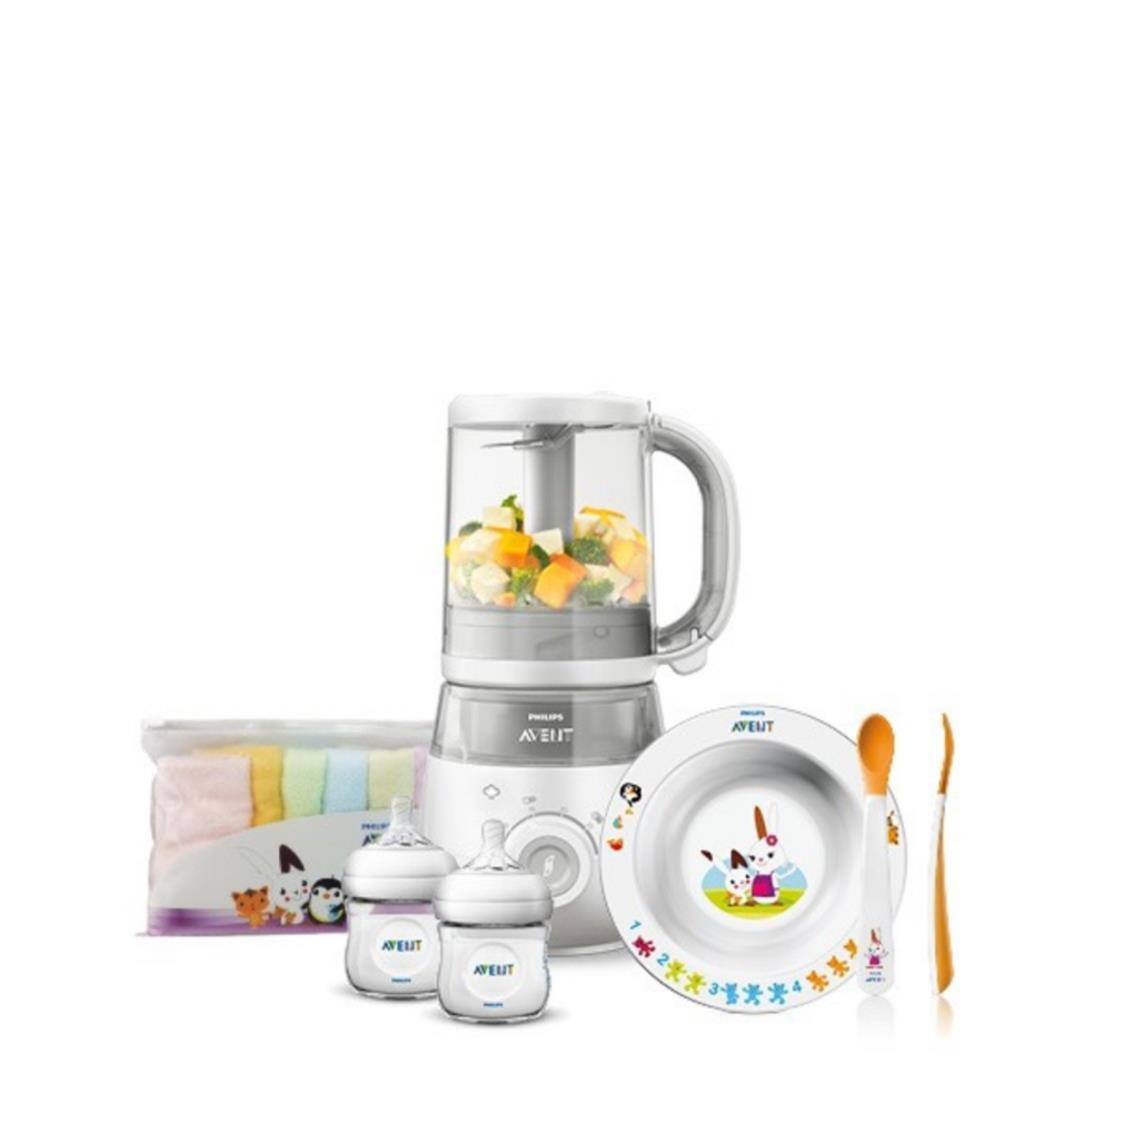 4-in-1 Baby Food Maker Set